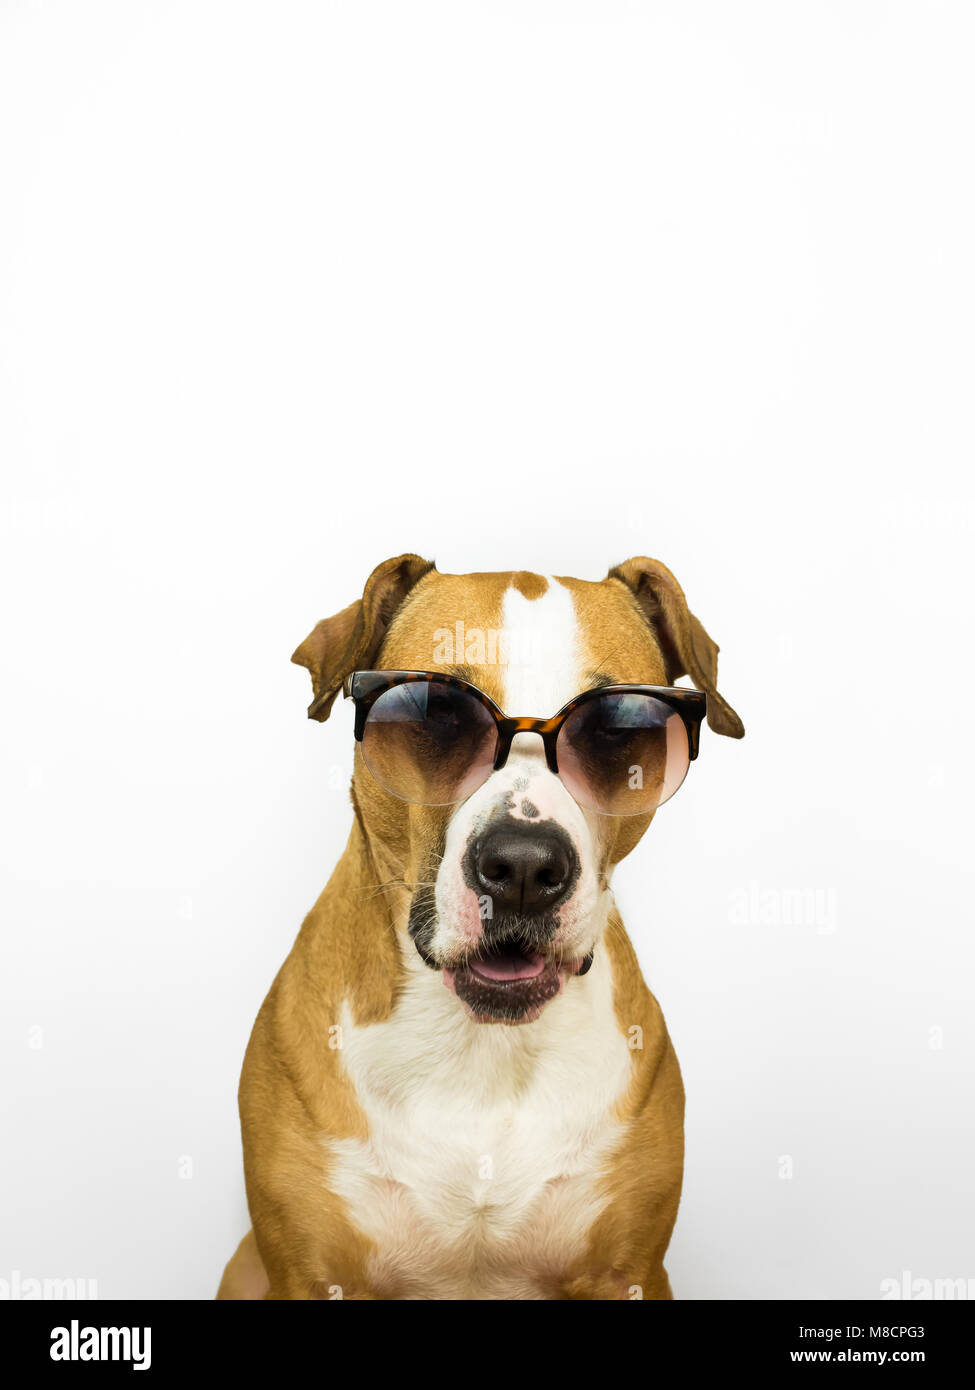 Funny staffordshire terrier dog in sunglasses. Studio photo of pitbull terrier puppy in summer eyeglasses posing - Stock Image